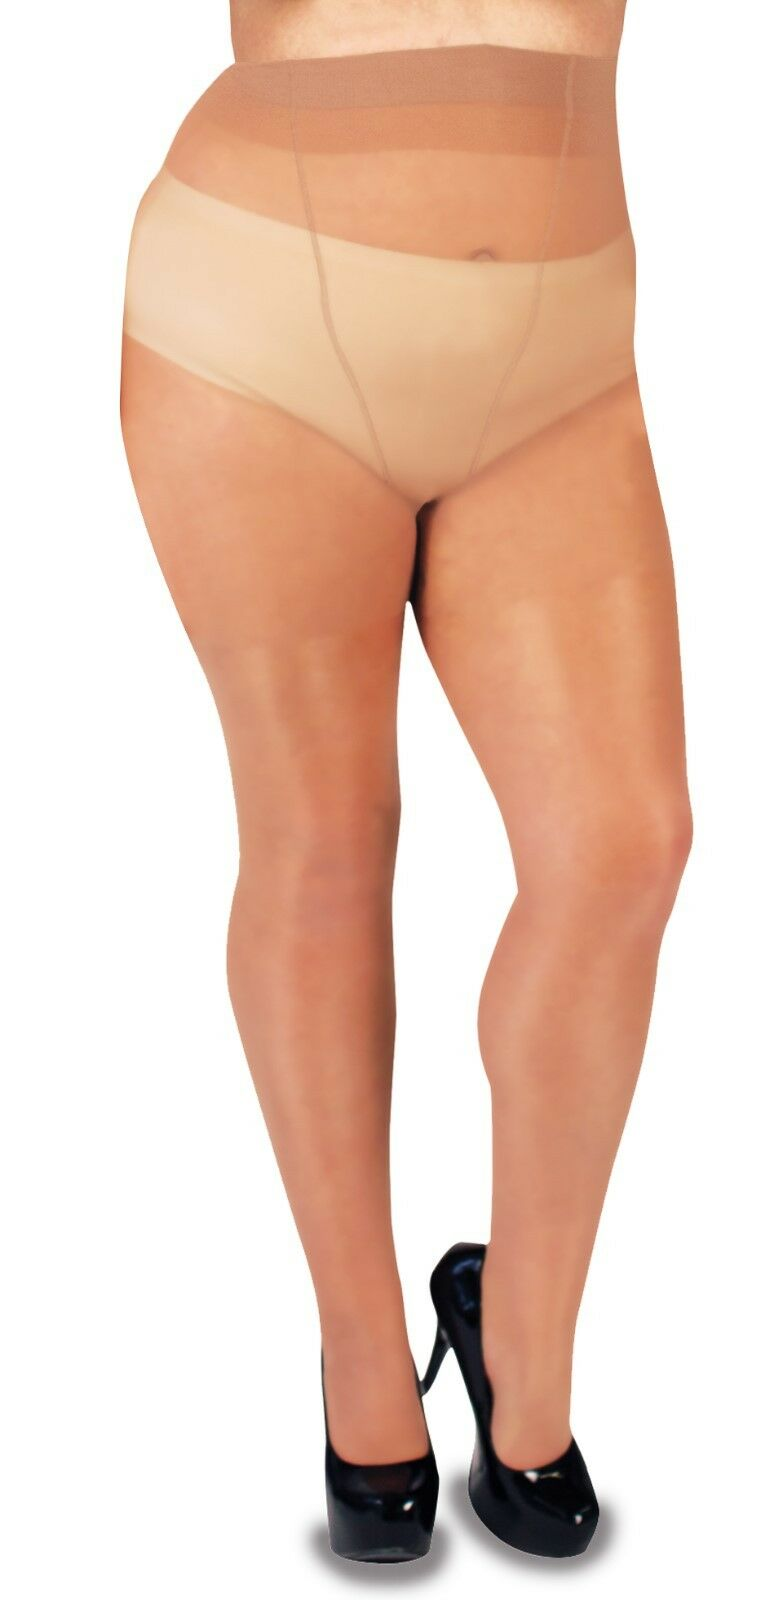 Glamory 50222 Satin 20 XT Supersize tights Extended Sizes 5XL-7XL and 8XL-10XL